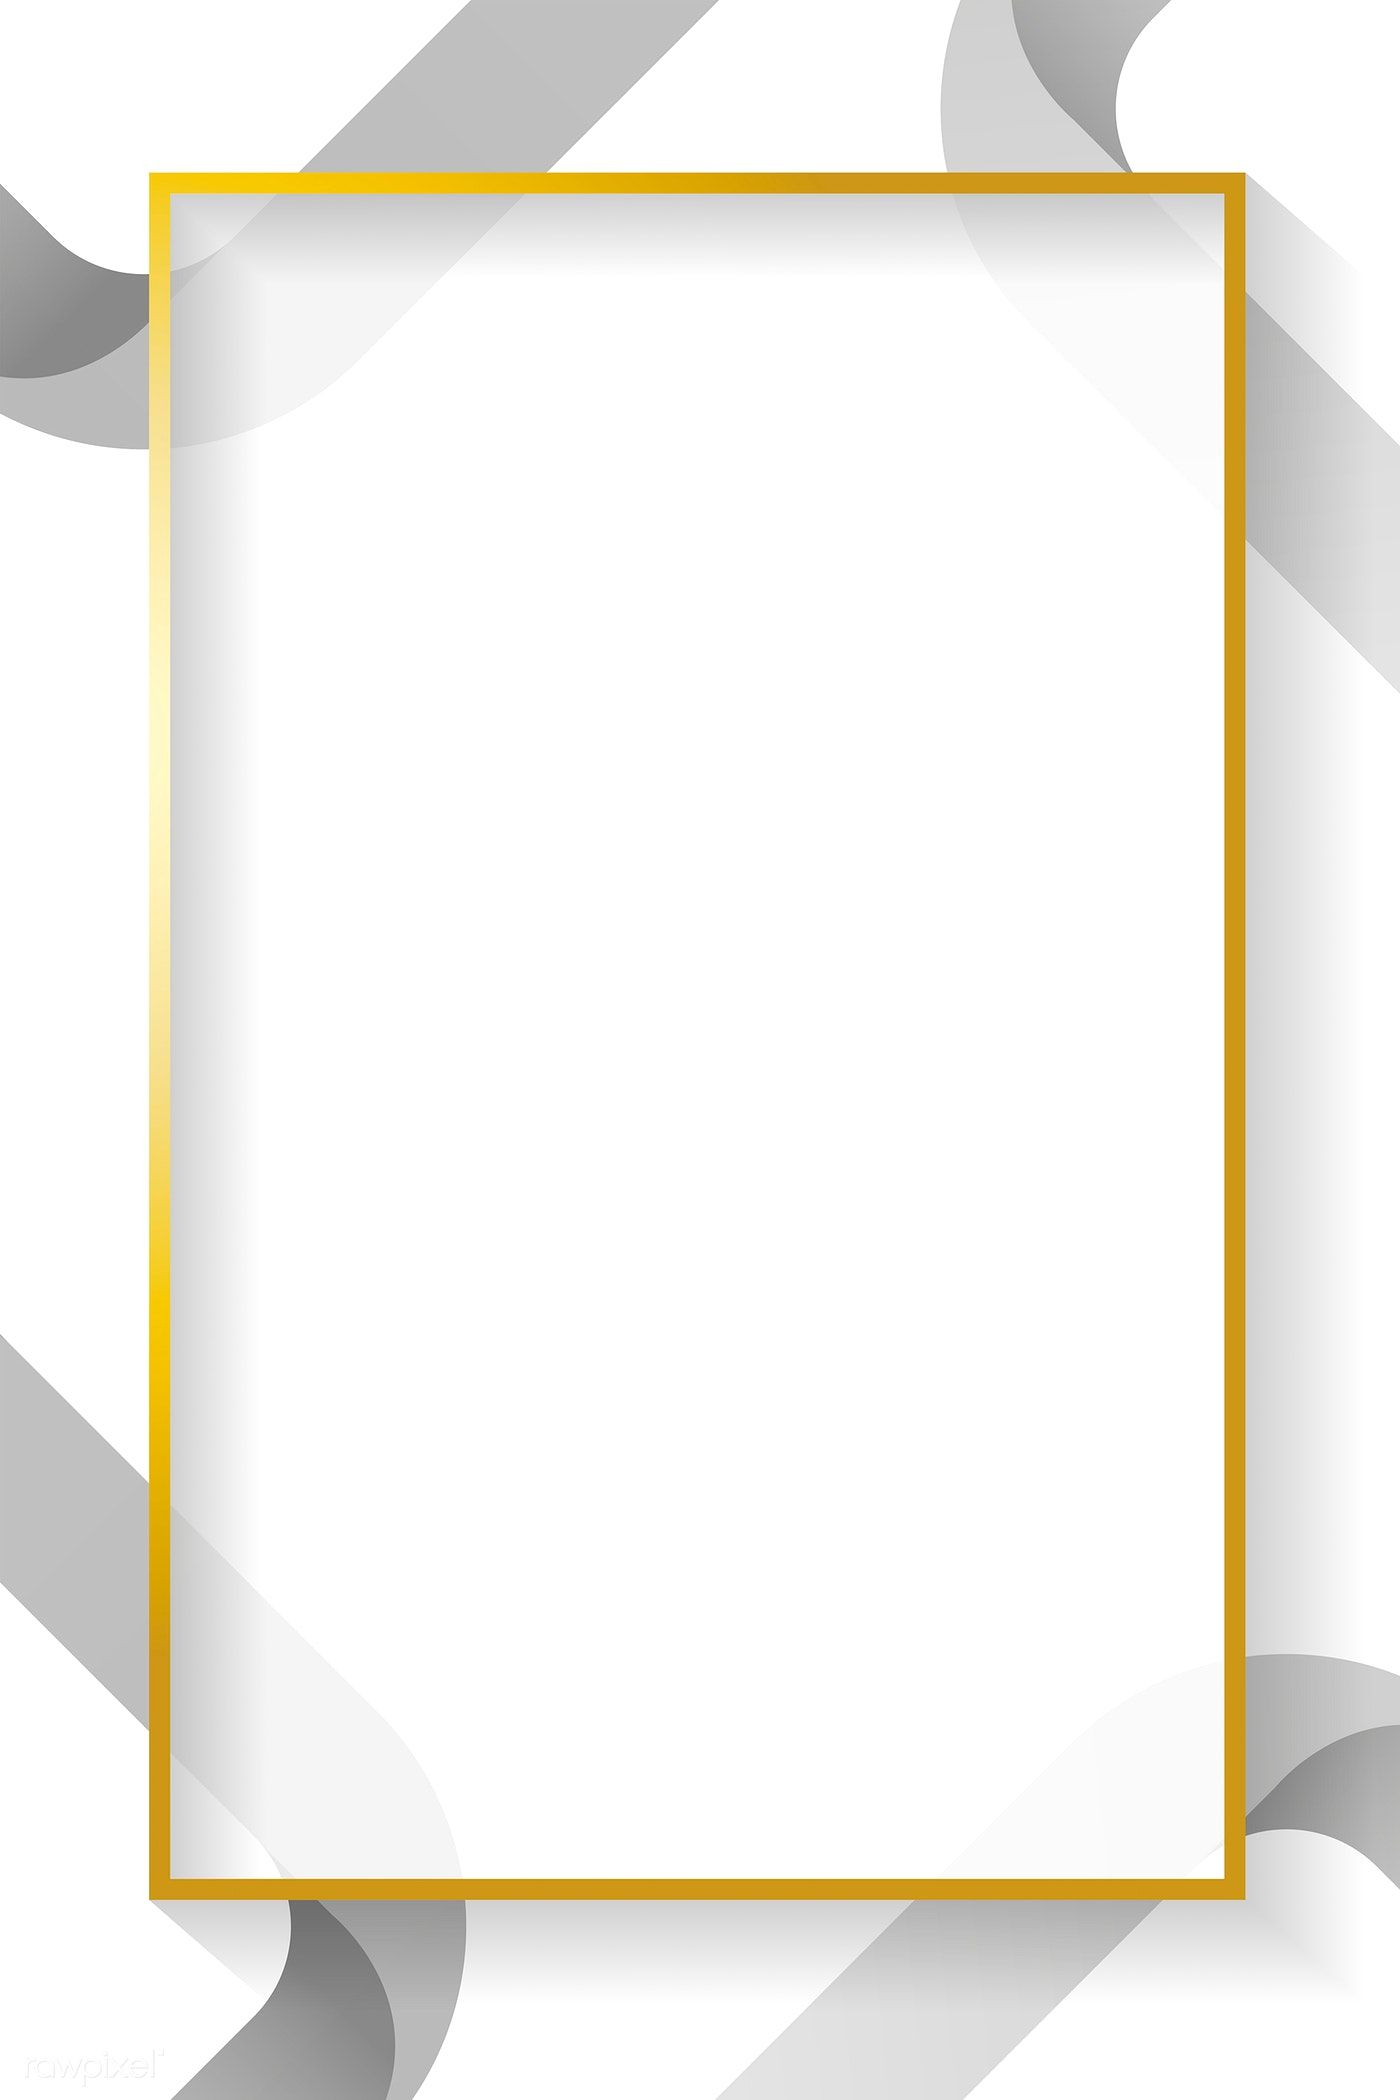 Blank Rectangle Abstract Frame Vector Premium Image By Rawpixel Com Taus Geometric Poster Design Powerpoint Background Design Poster Background Design